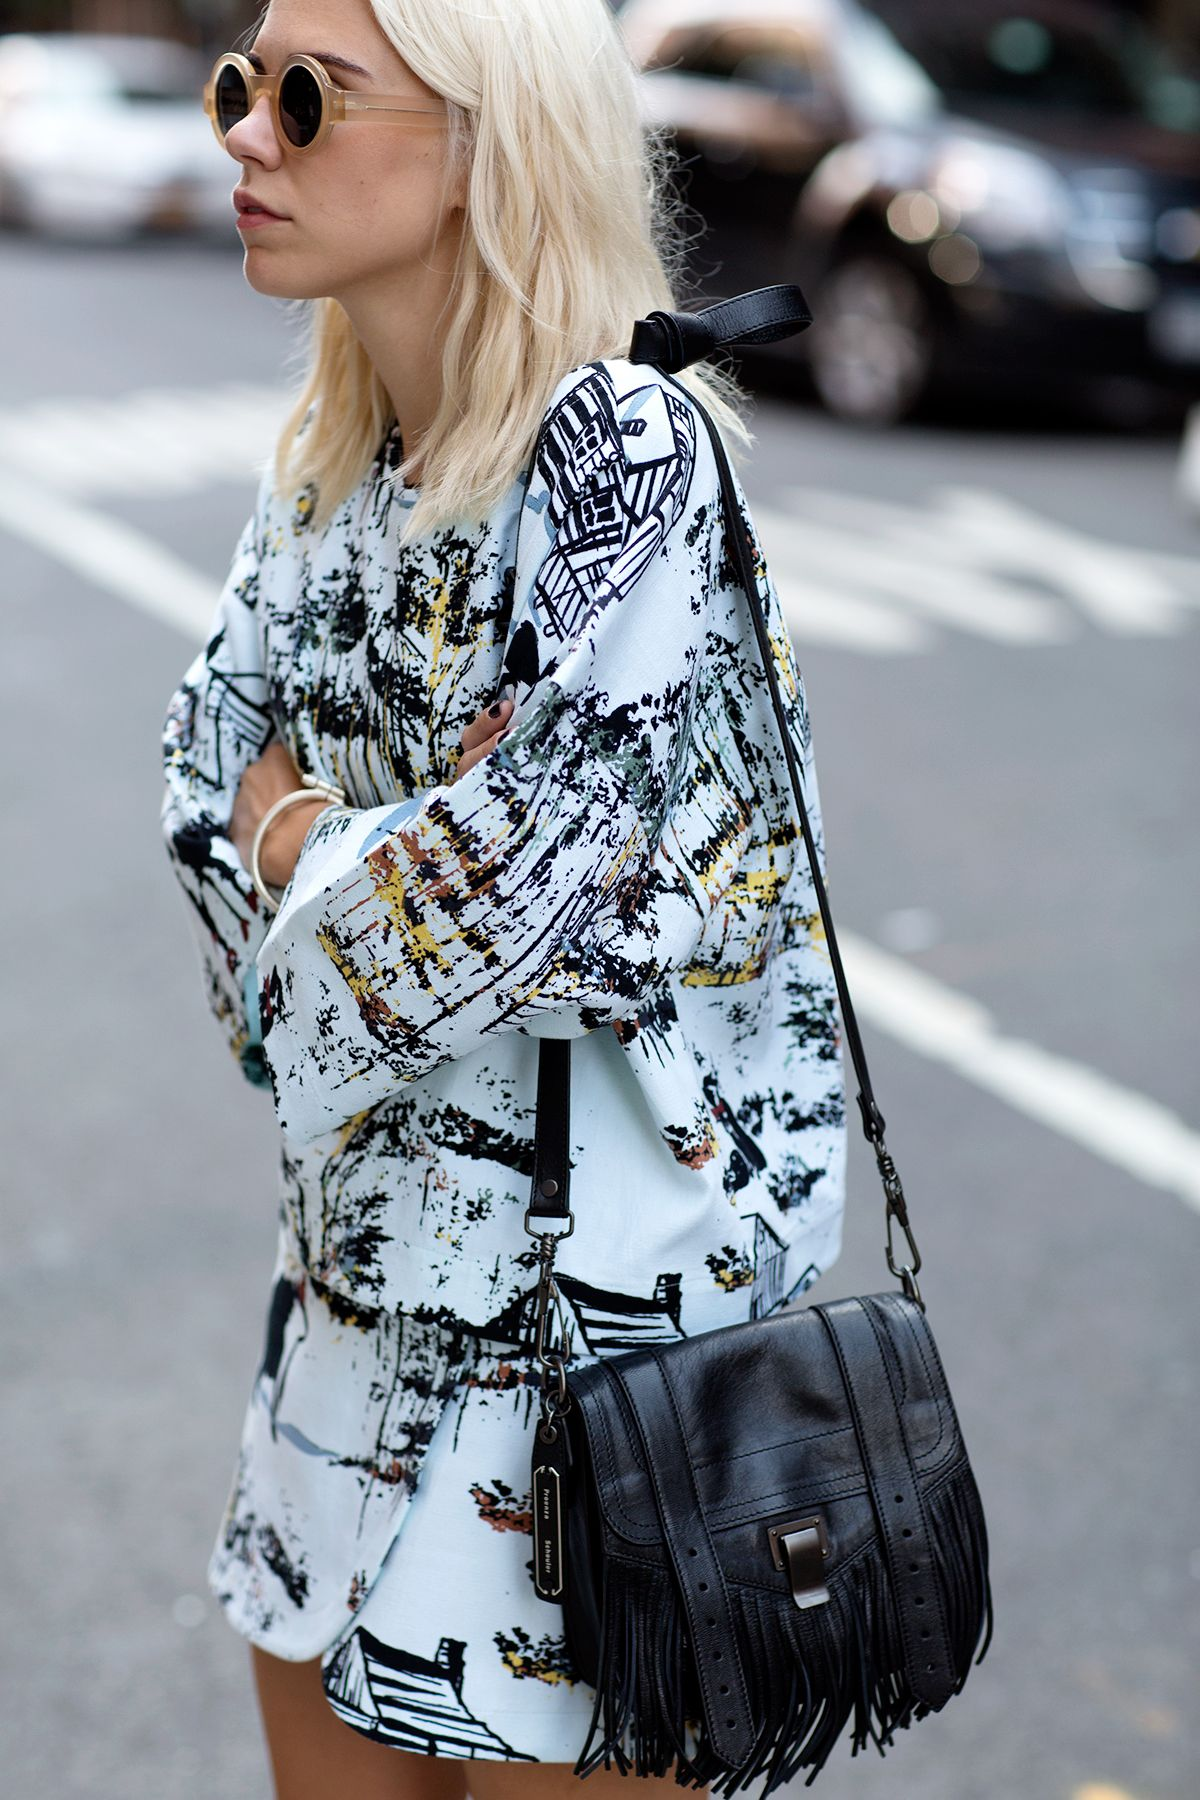 round sunglasses, graphic prints & Proenza Schouler fringe bag #style #fashion #alwaysjudging